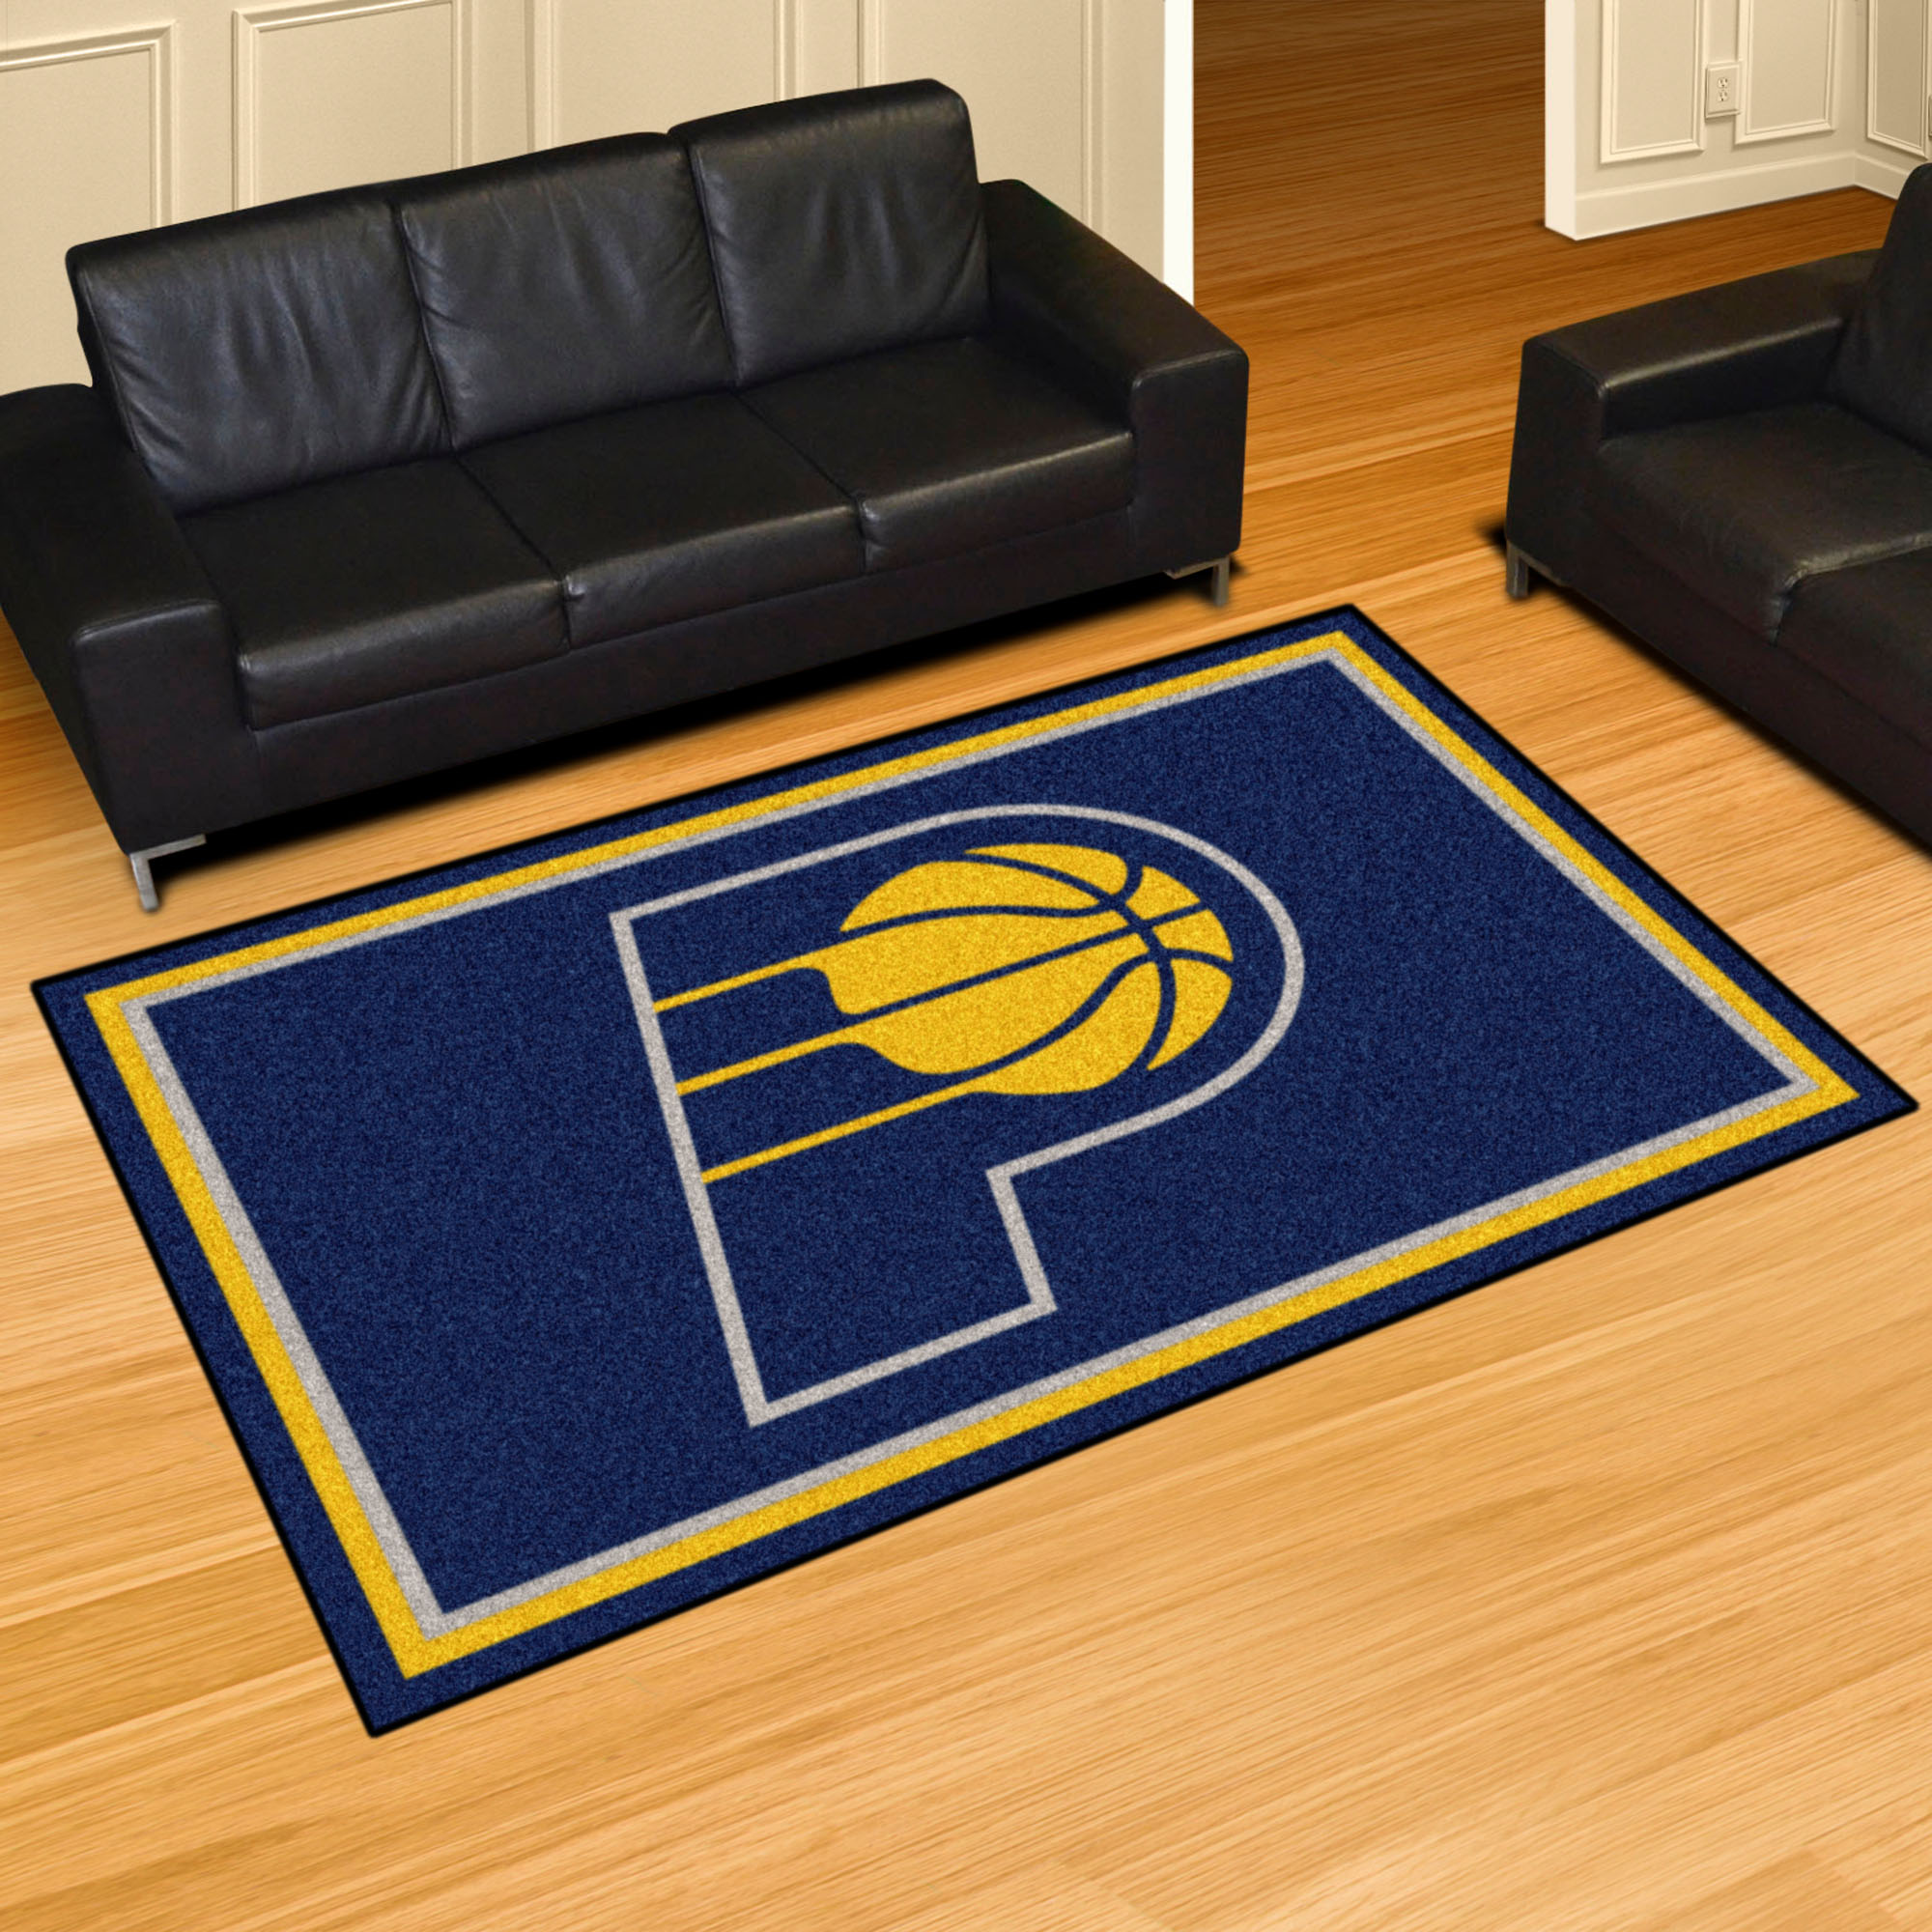 Indiana Pacers 5x8 Area Rug